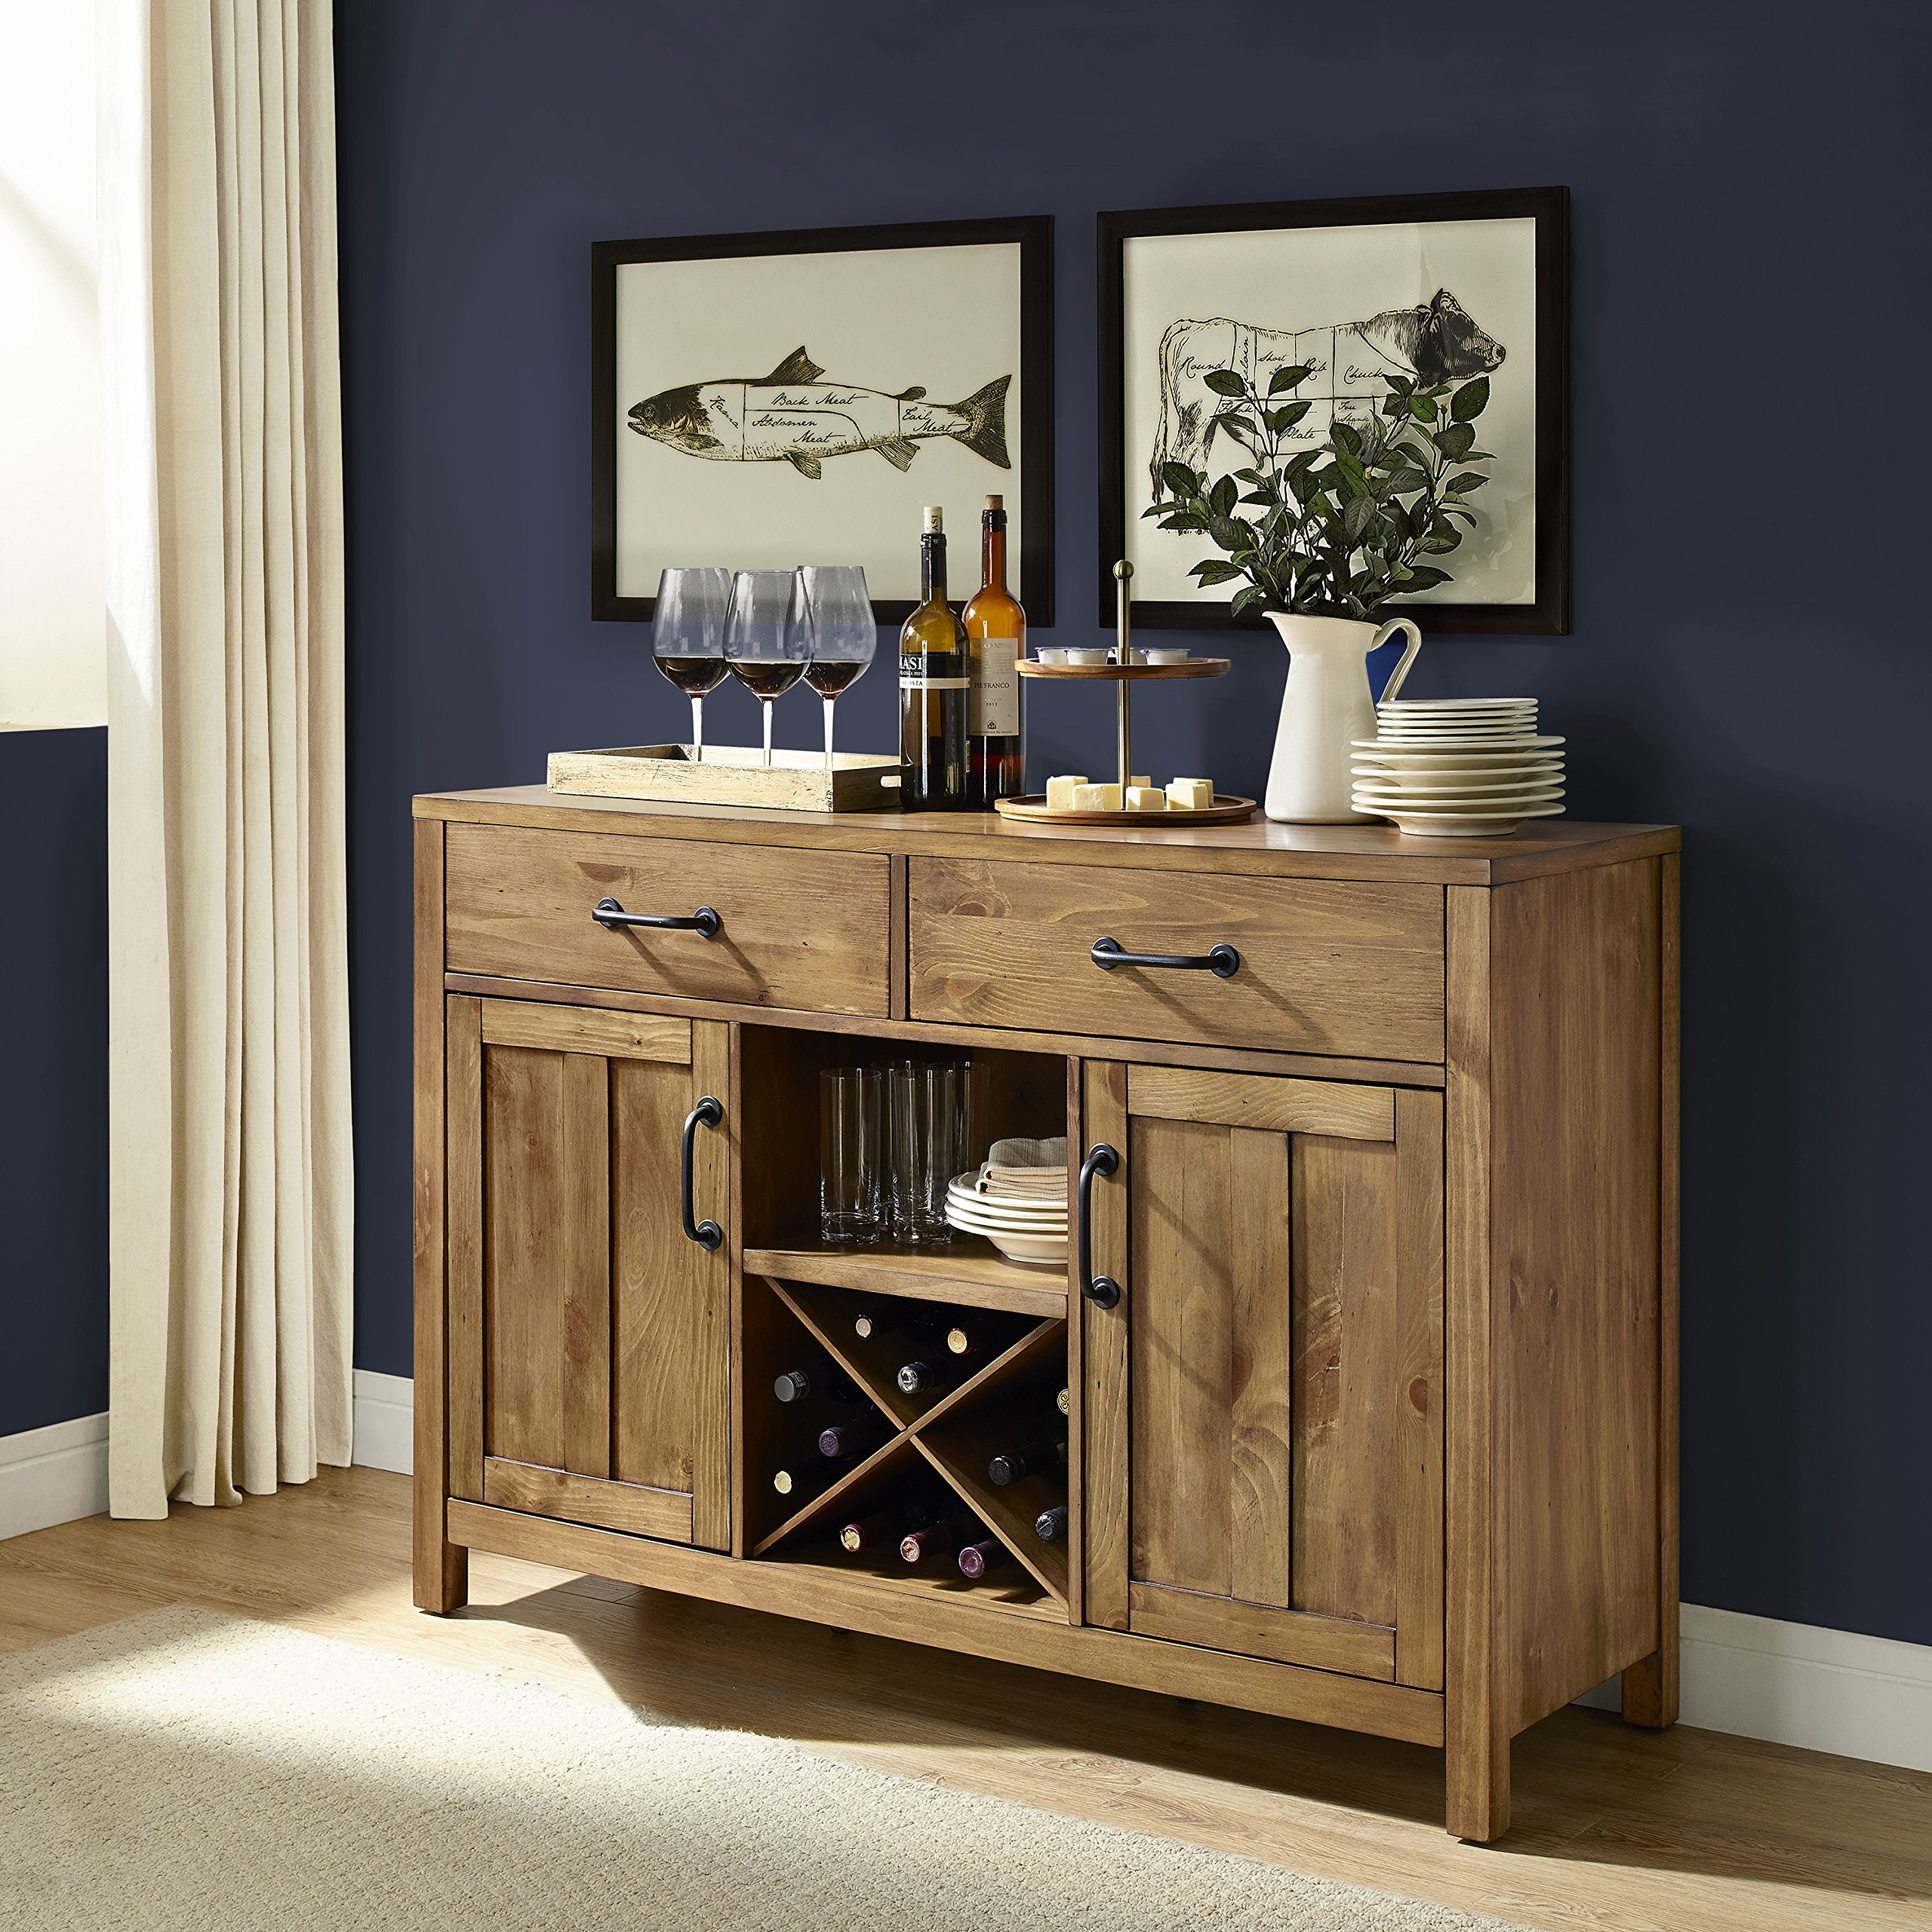 Crosley Furniture Roots Buffet Dining Room Storage - Natural by Crosley Furniture (Image #4)